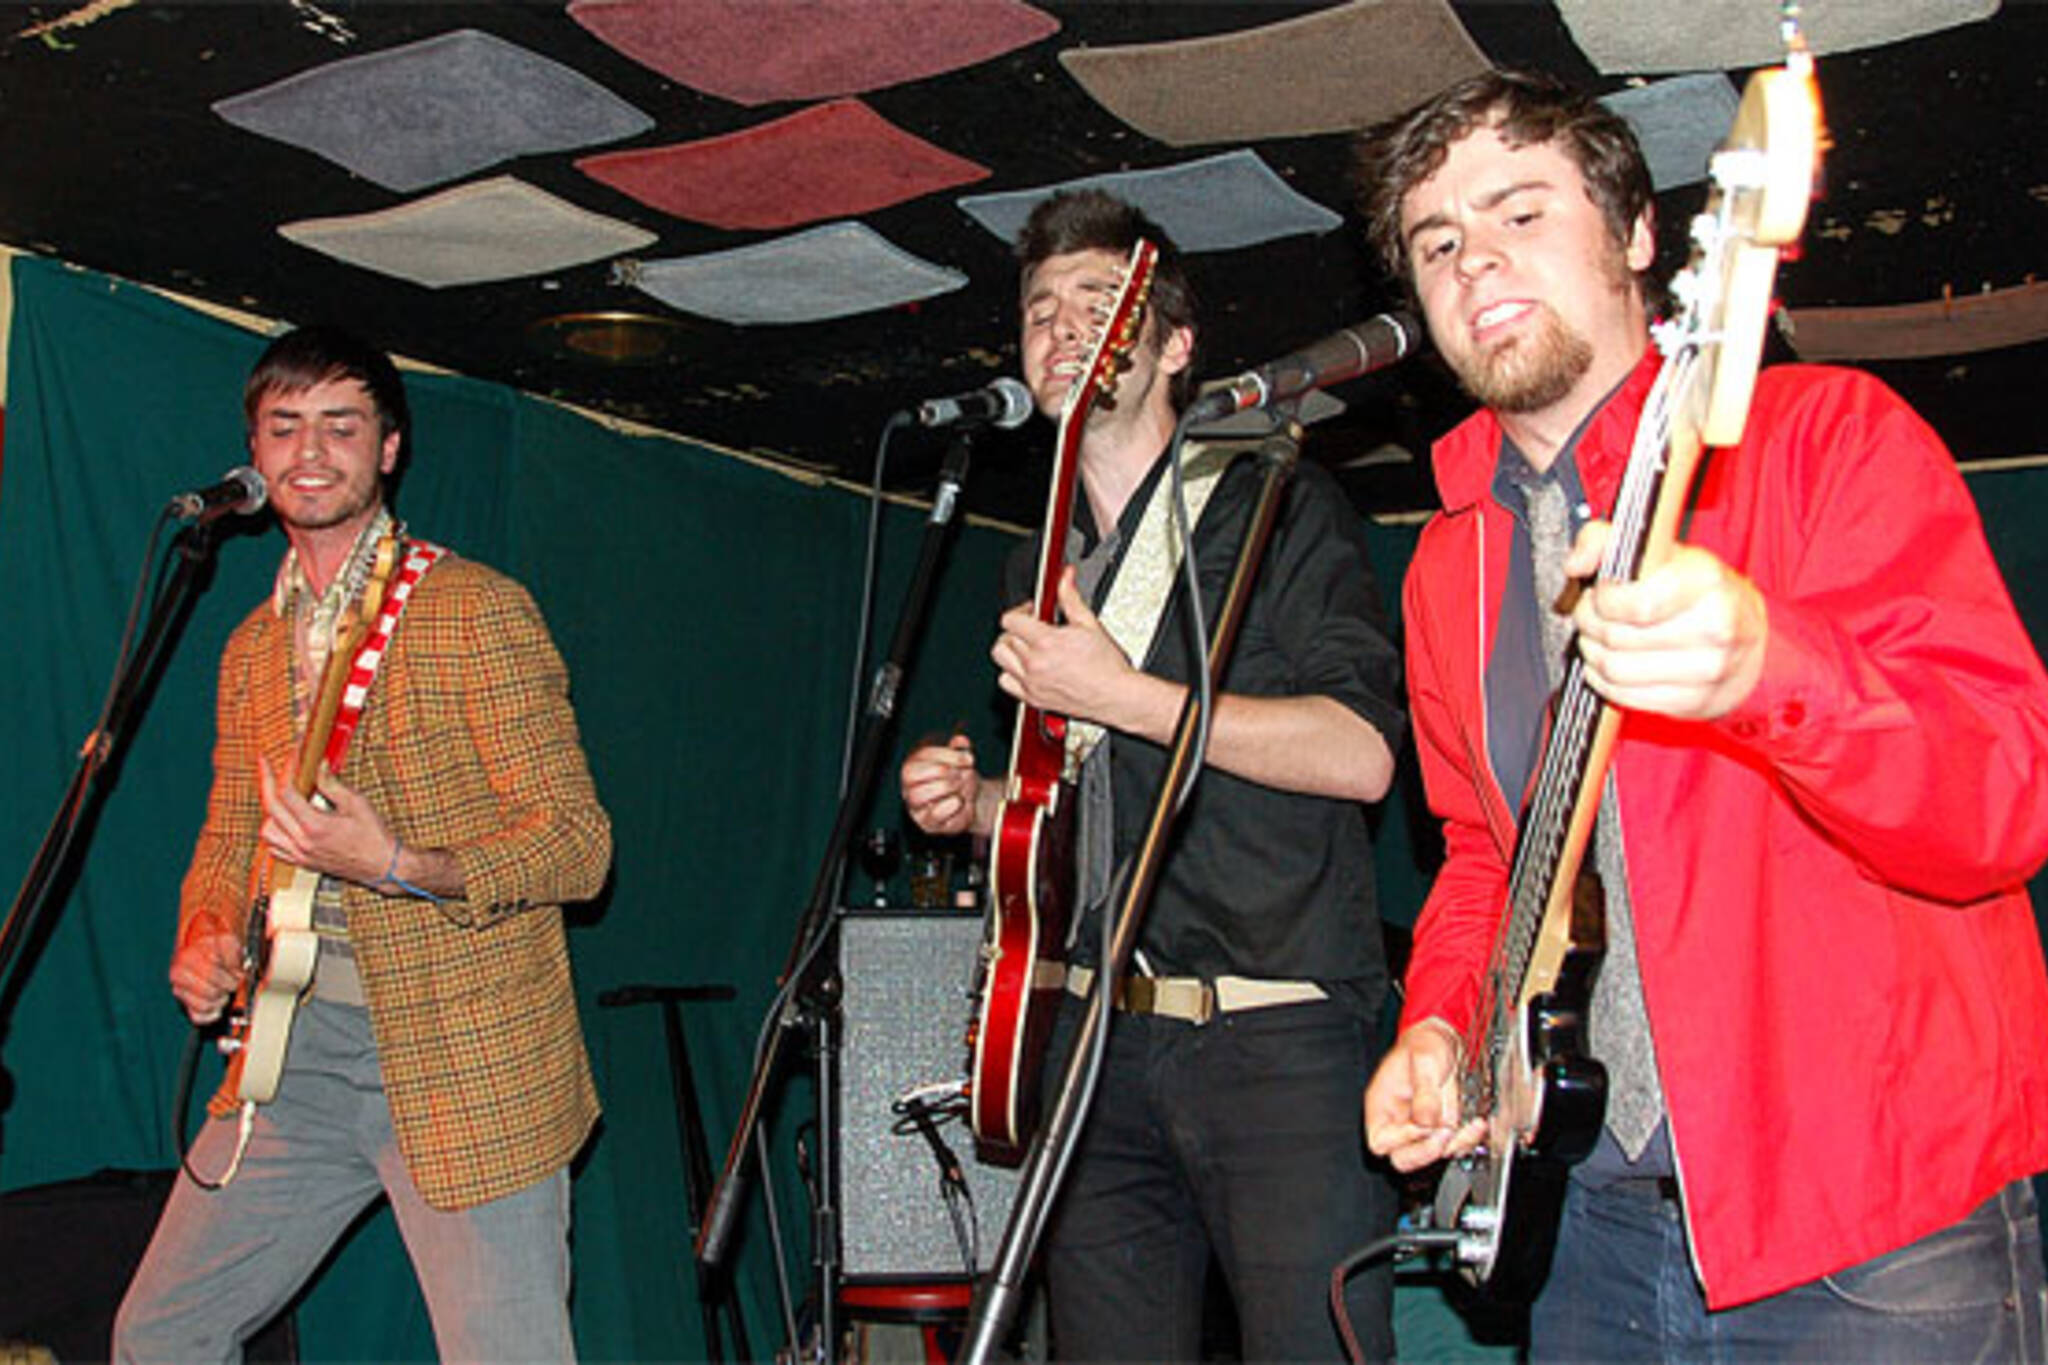 Photo of The Barons taken at TWM Showcase #1, by Kyle Rea